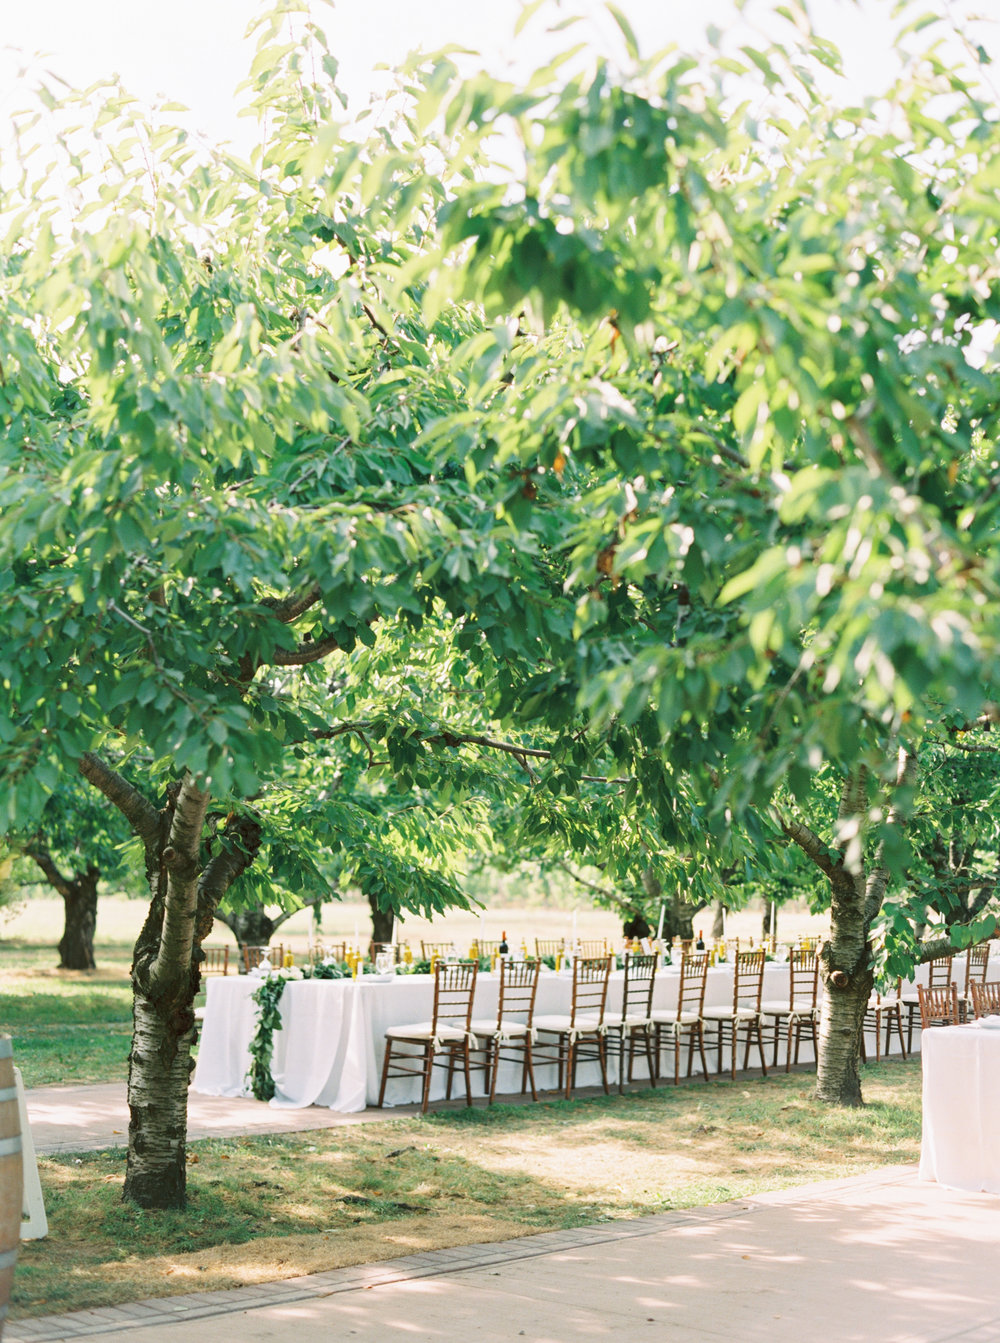 gracewood-kurtz-orchards-toronto-wedding-photographer-kurtz-film-richelle-hunter-cassandra-zac-dalpe-previews-30.jpg